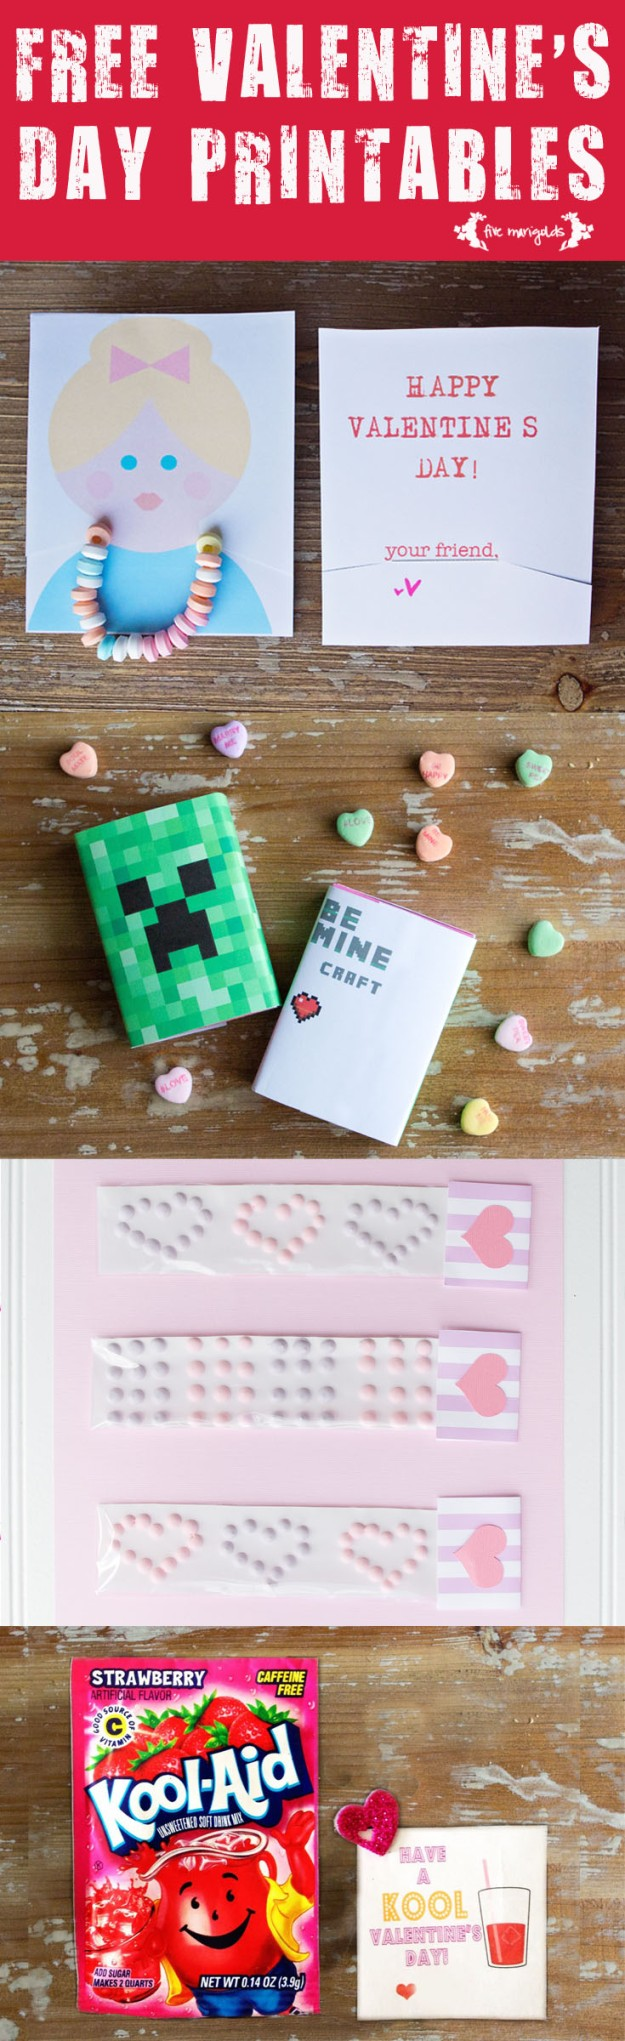 Free Valentine's Day Printables | Five Mariolds